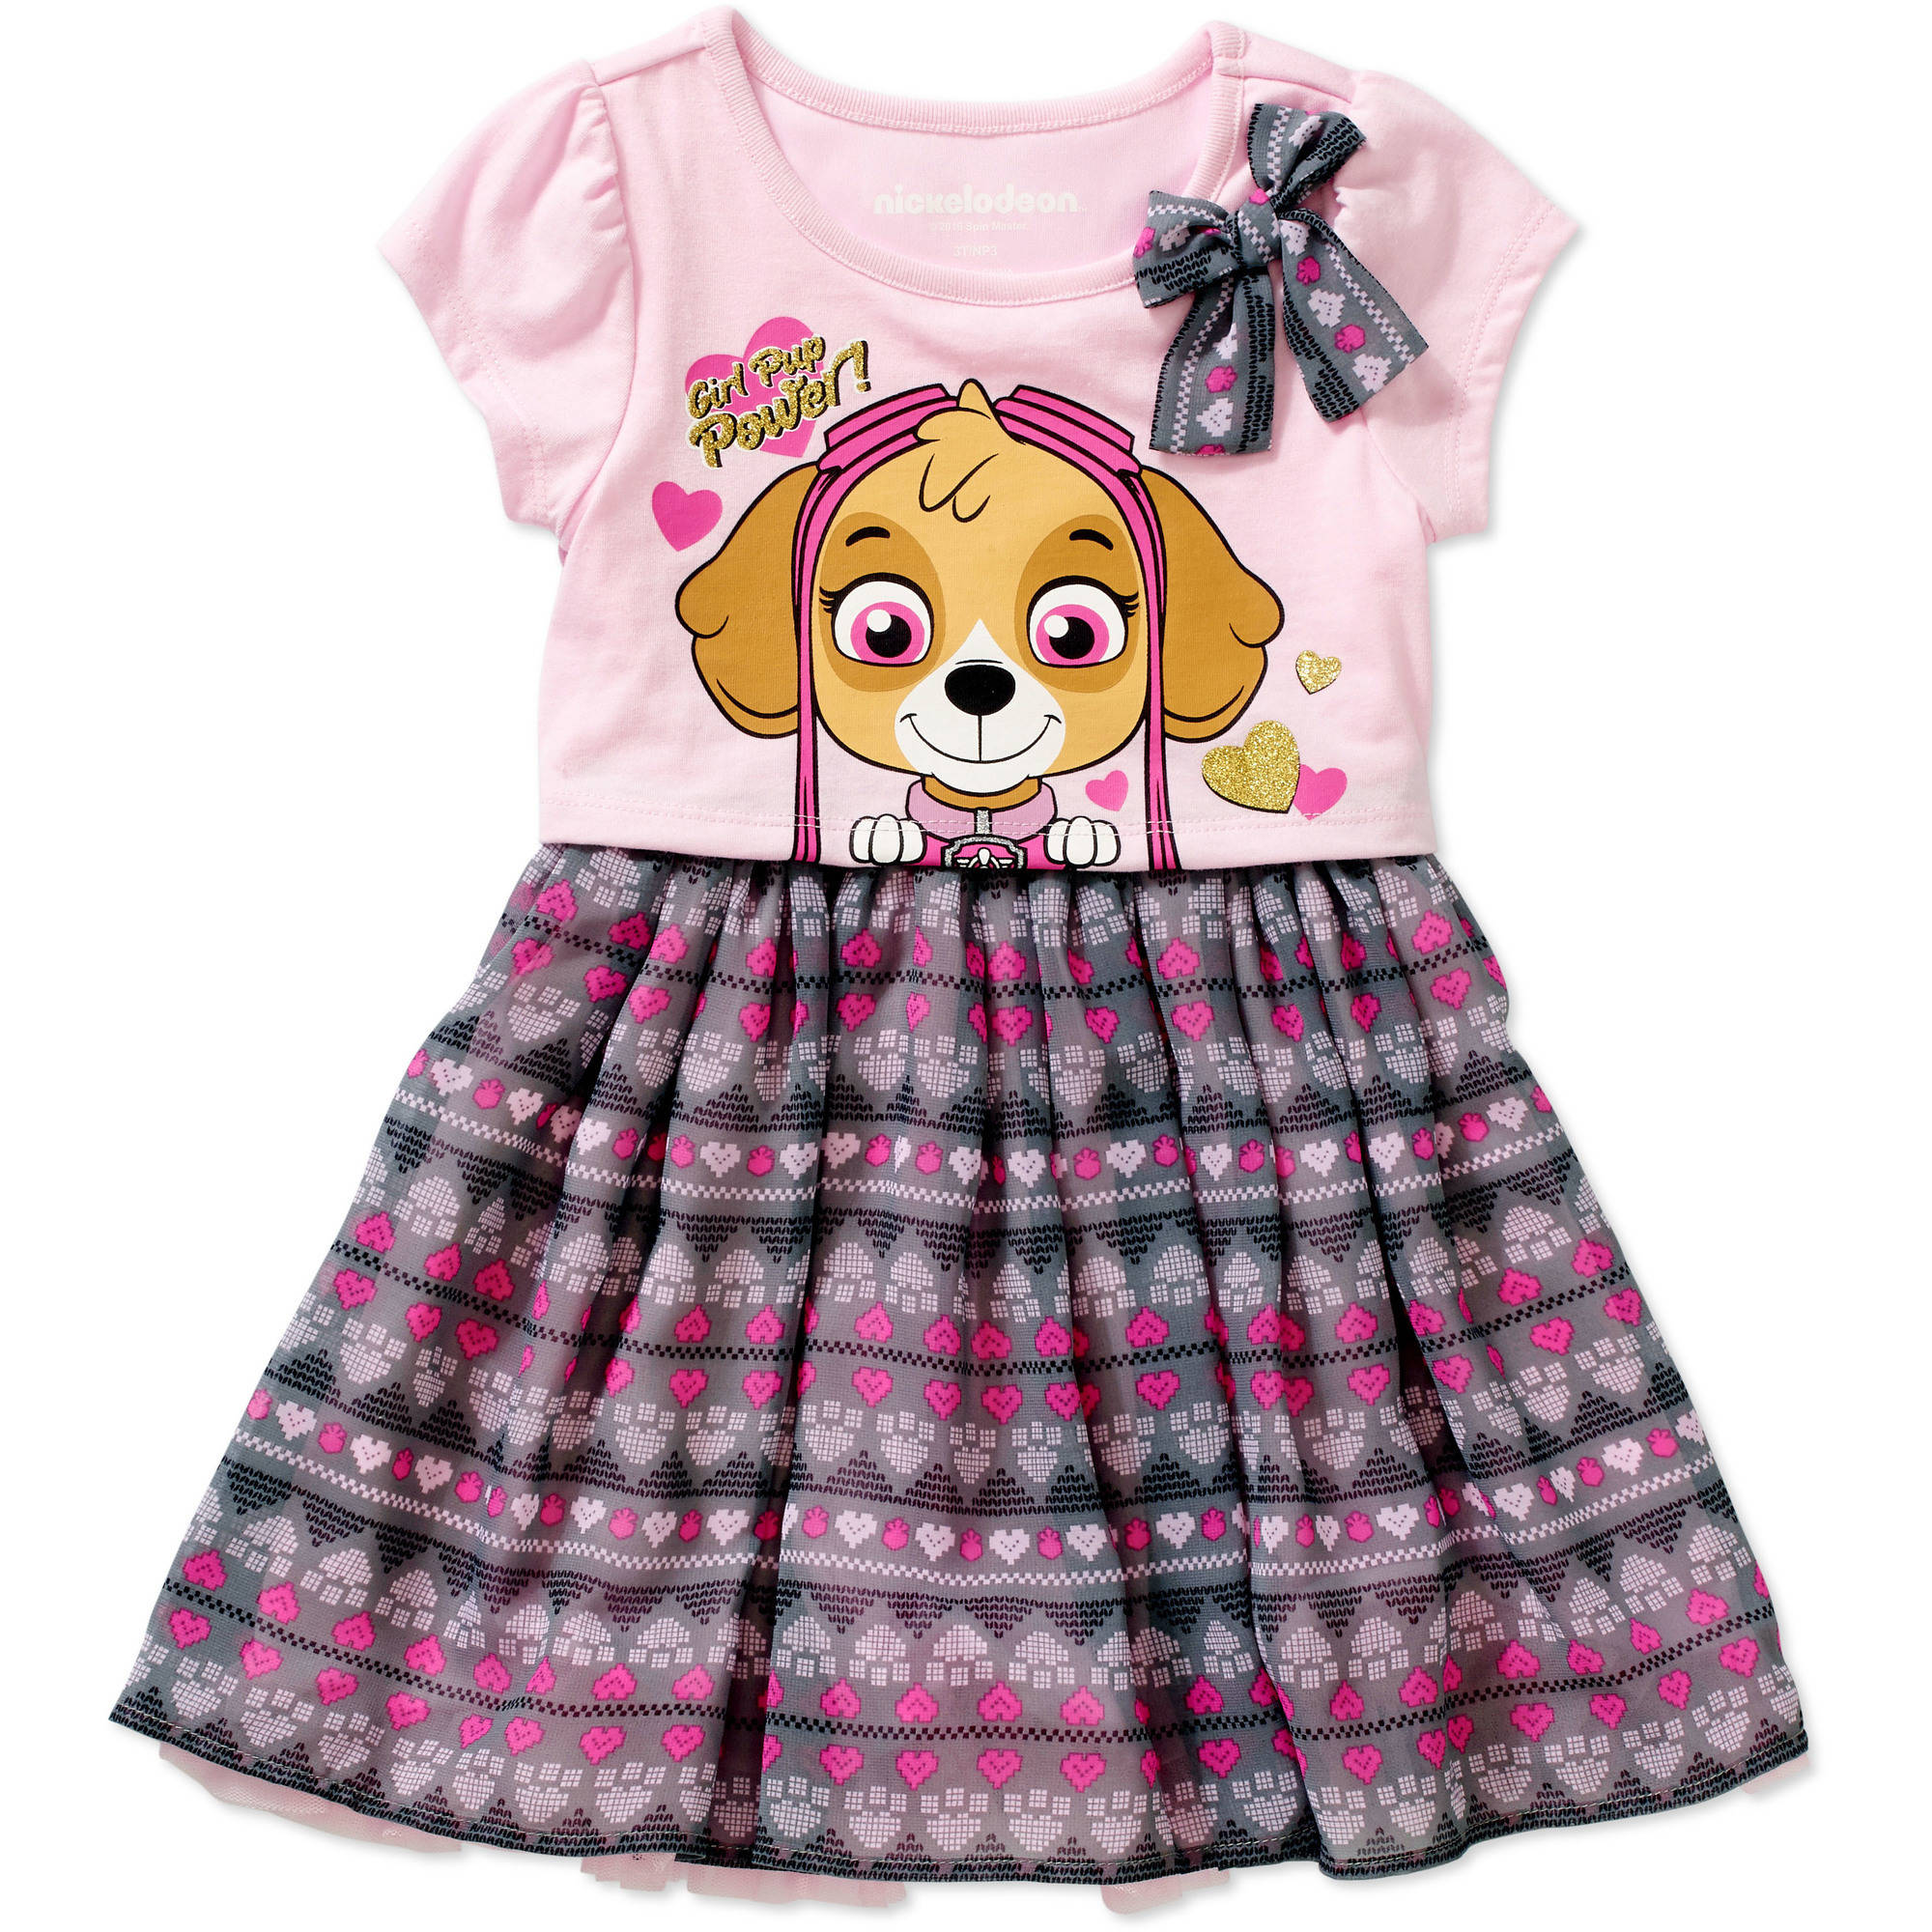 Nickelodeon Paw Patrol Toddler Girl 2-Fer Dress